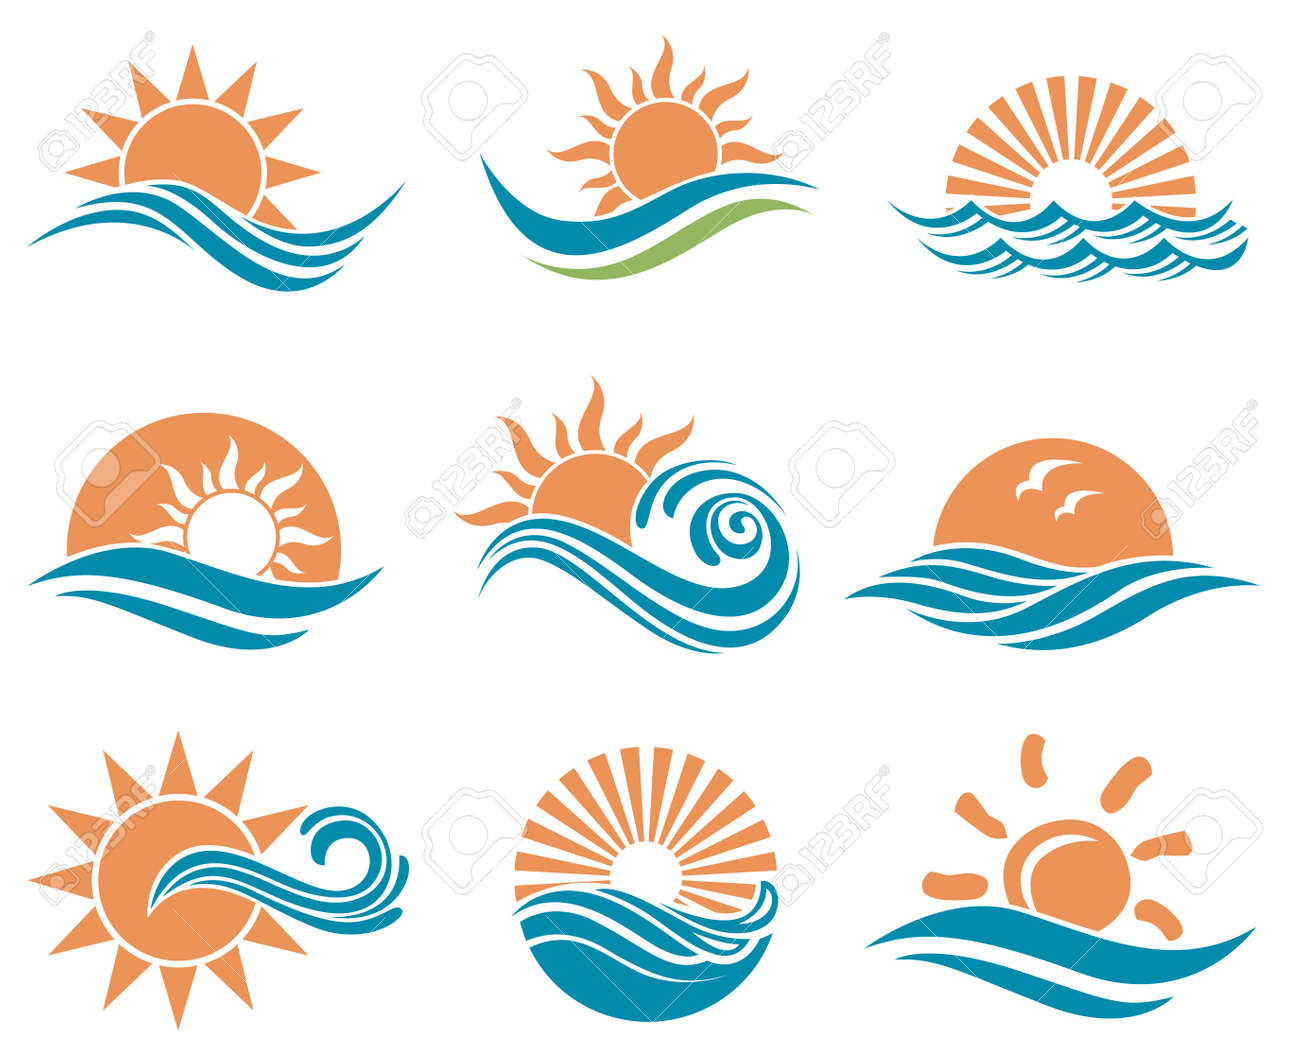 abstract collection of sun and sea icons - 69113328